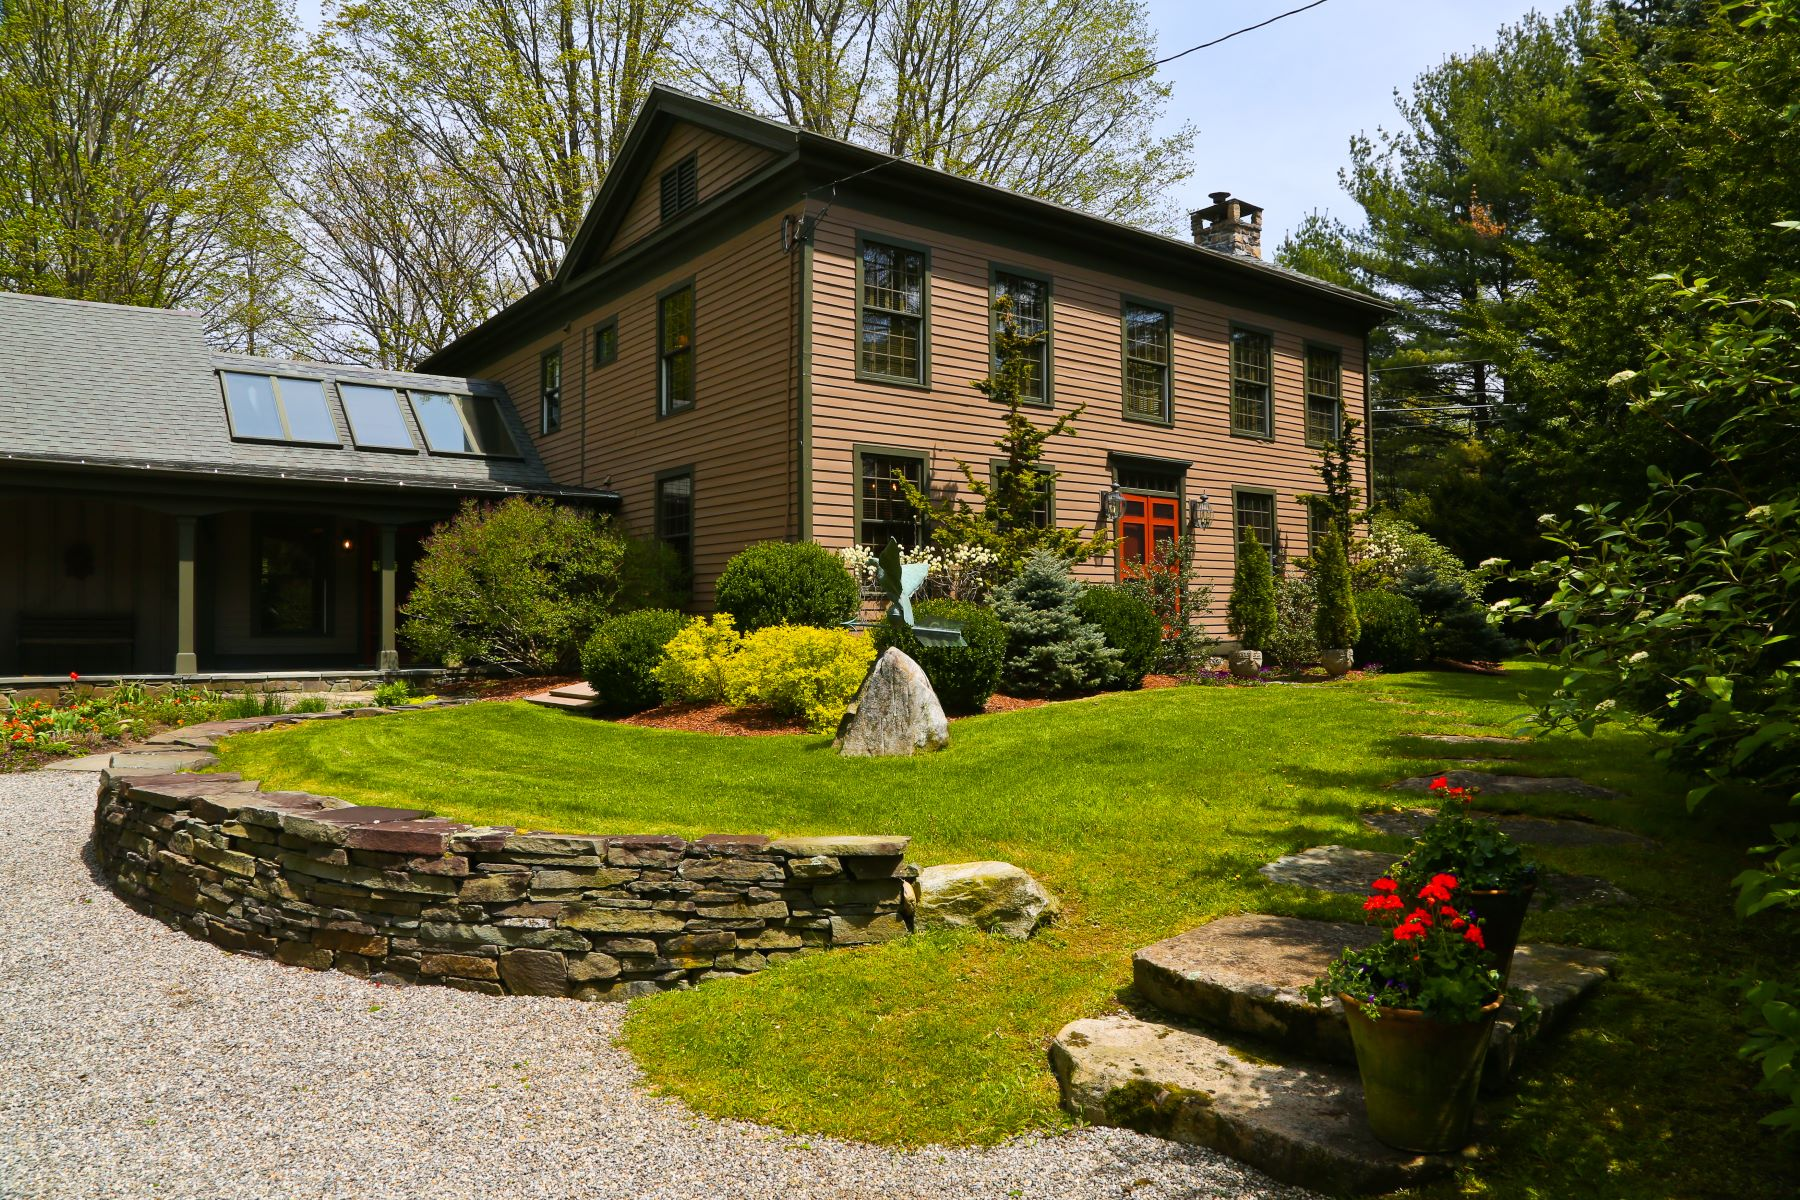 Casa Unifamiliar por un Venta en Turn-key, Historic Colonial in Magical Setting 0 & 399 State Rd Great Barrington, Massachusetts 01230 Estados Unidos